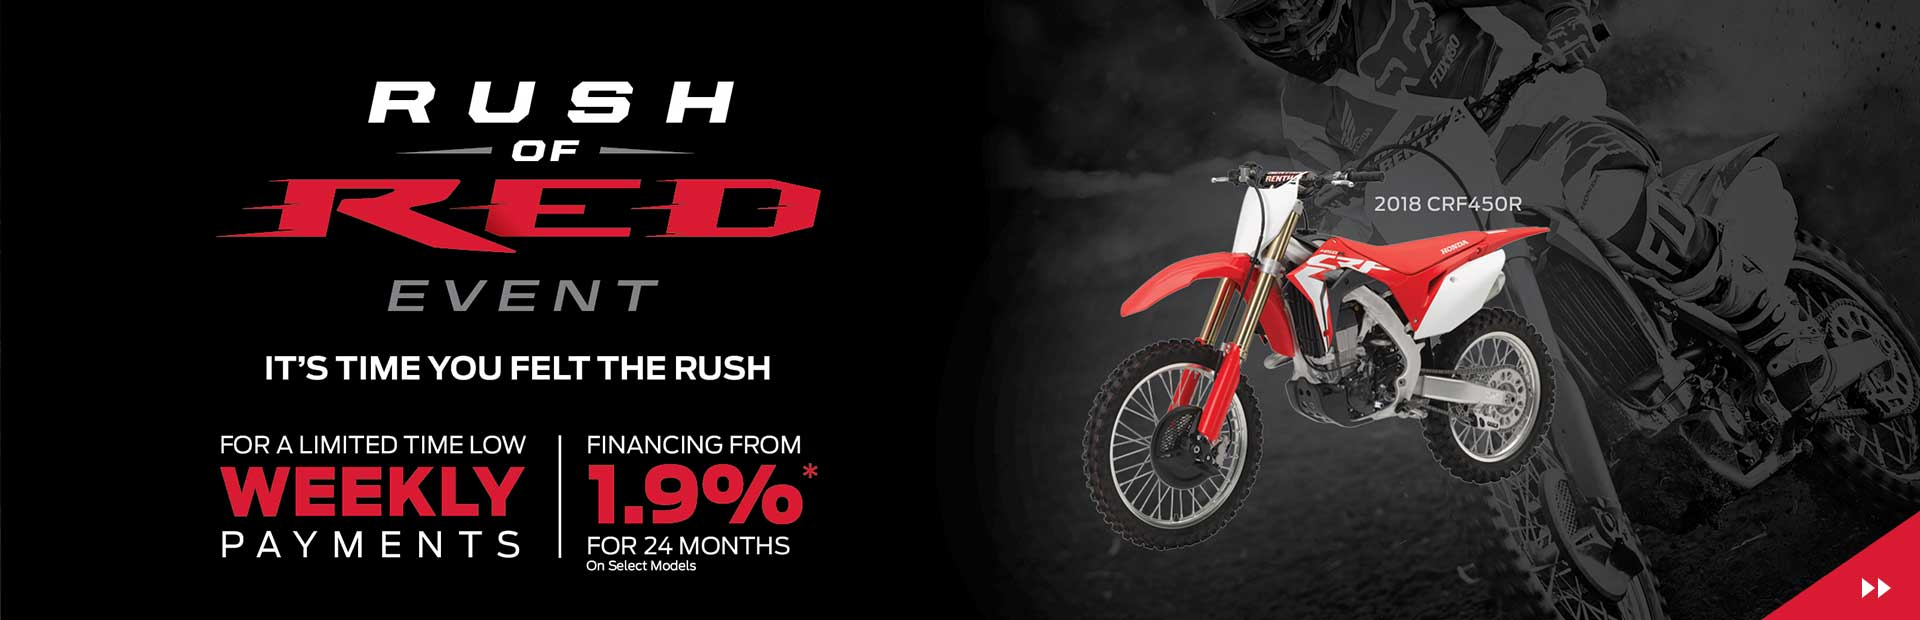 Honda Rush of Red Event is on Now! Financing from 1.9% for 24 months oac